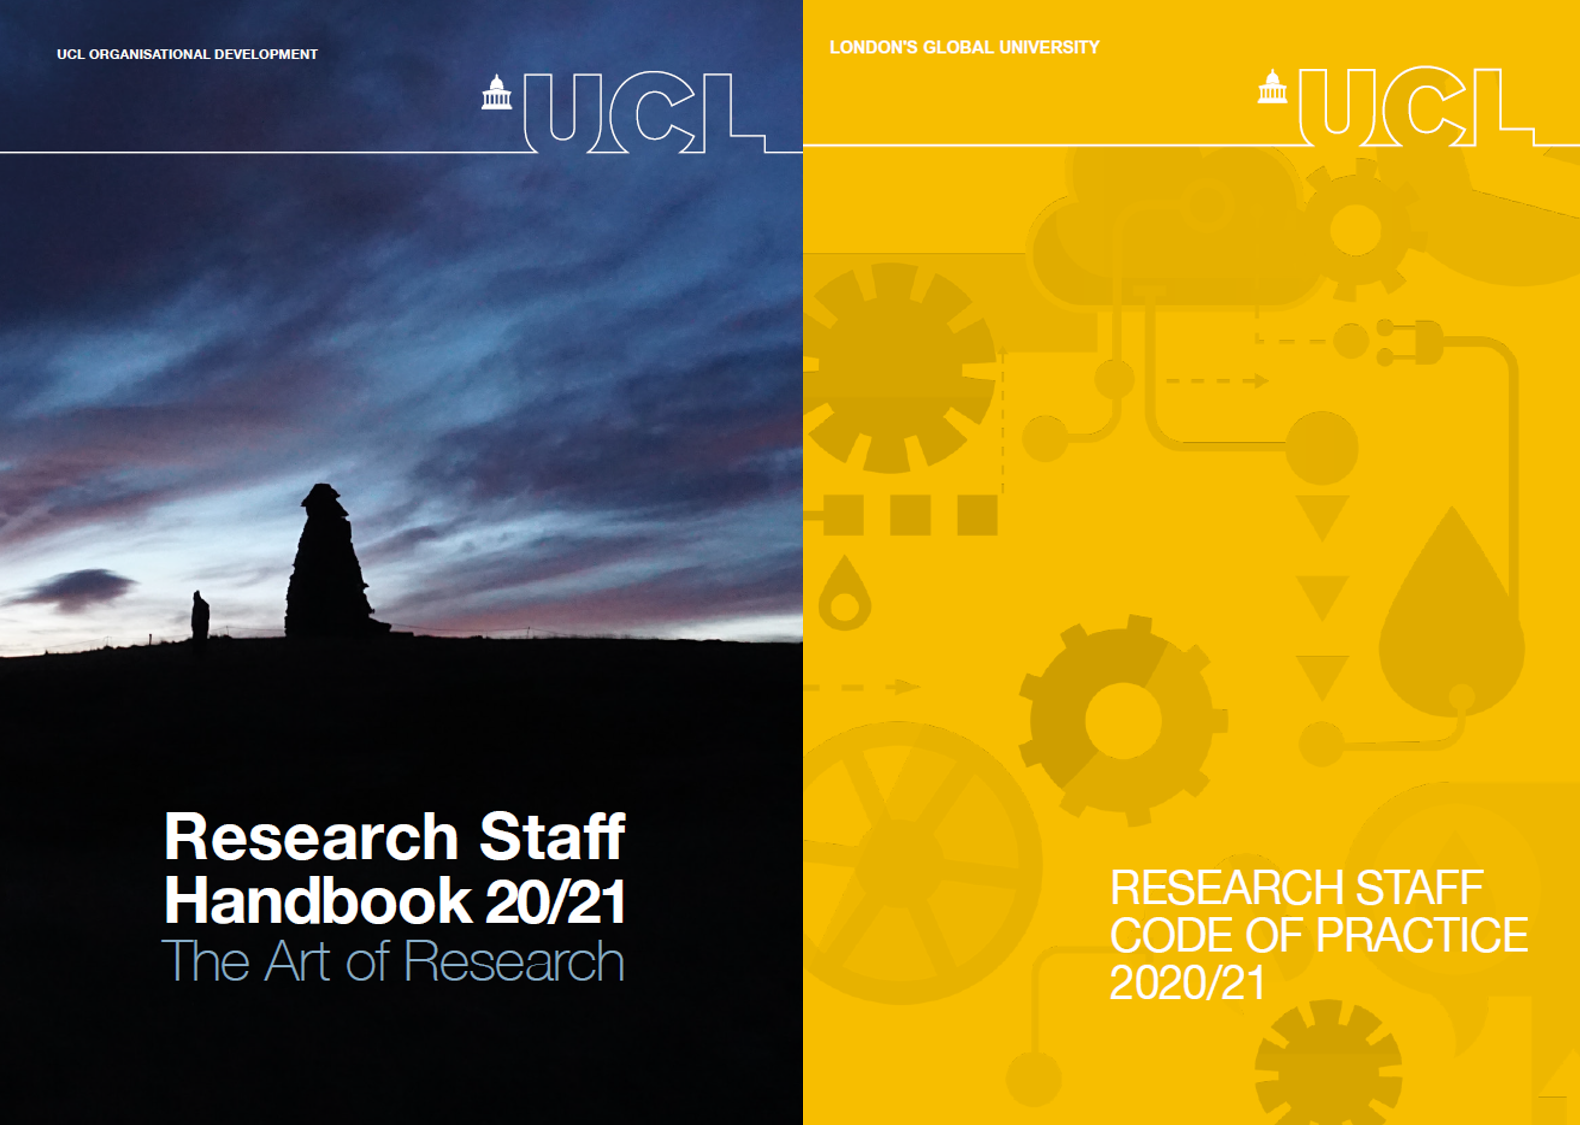 Research Staff Handbook and Code of Practice Covers